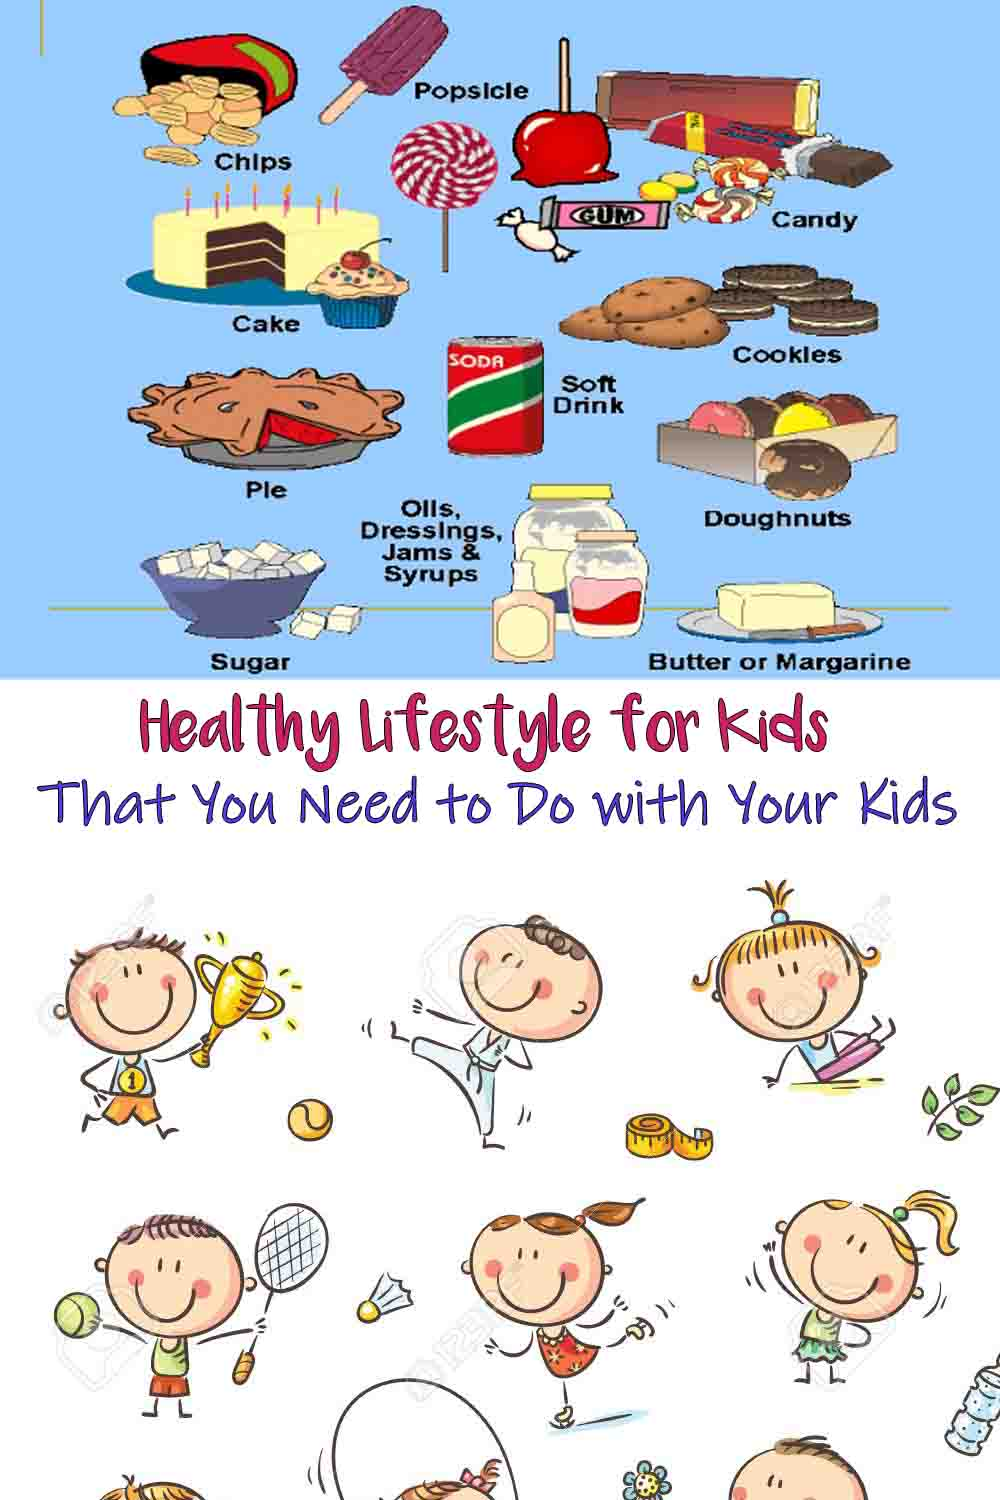 Healthy Lifestyle for Kids That You Need to Do with Your Kids